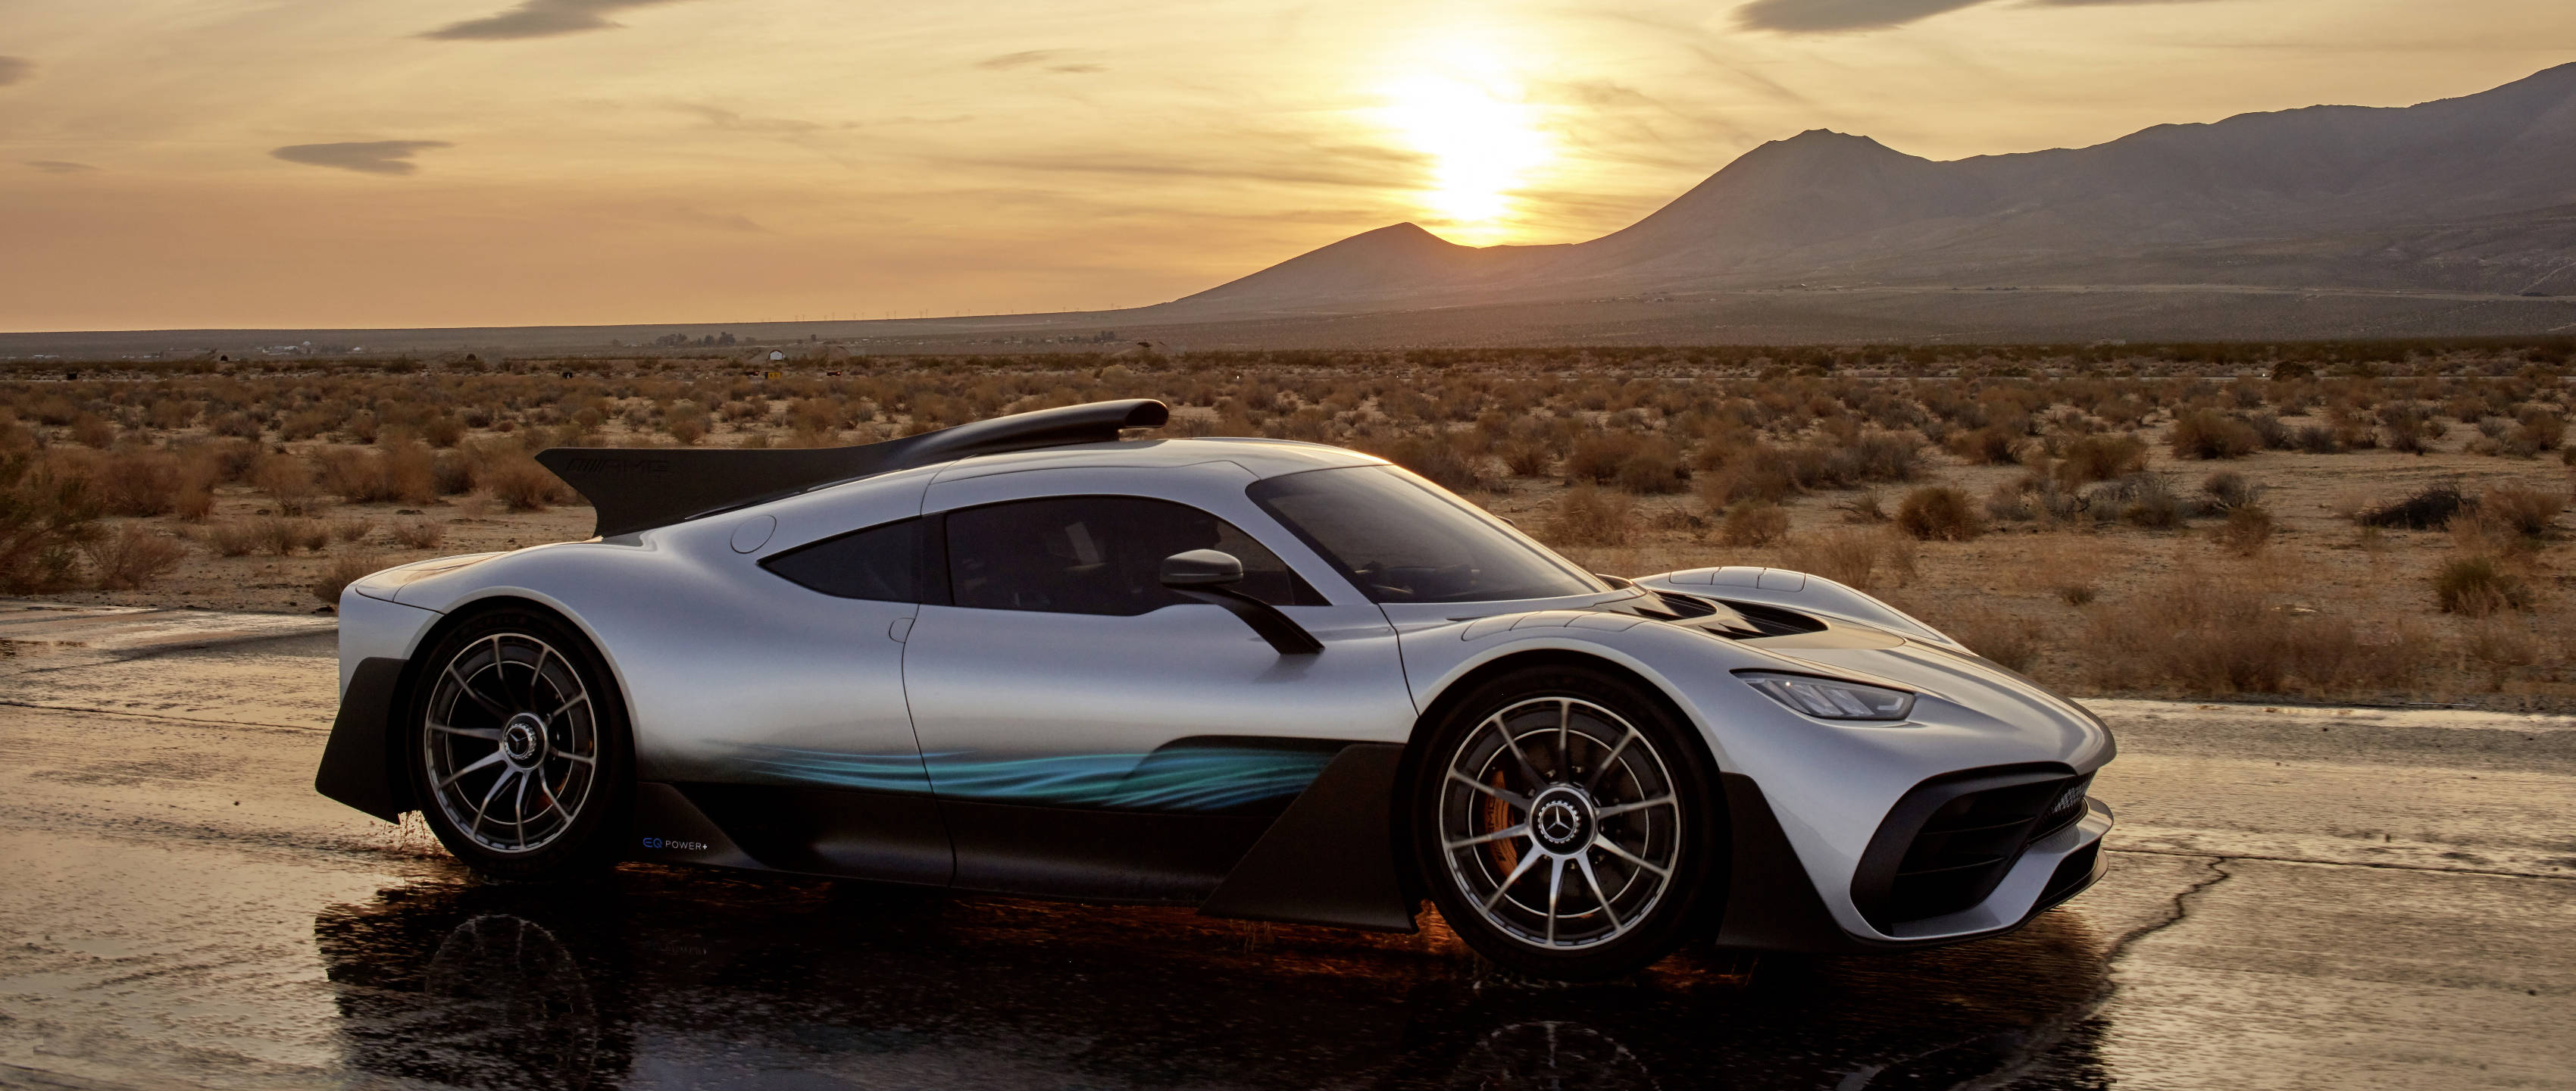 Mercedes Amg Project One Wallpaper Gallery